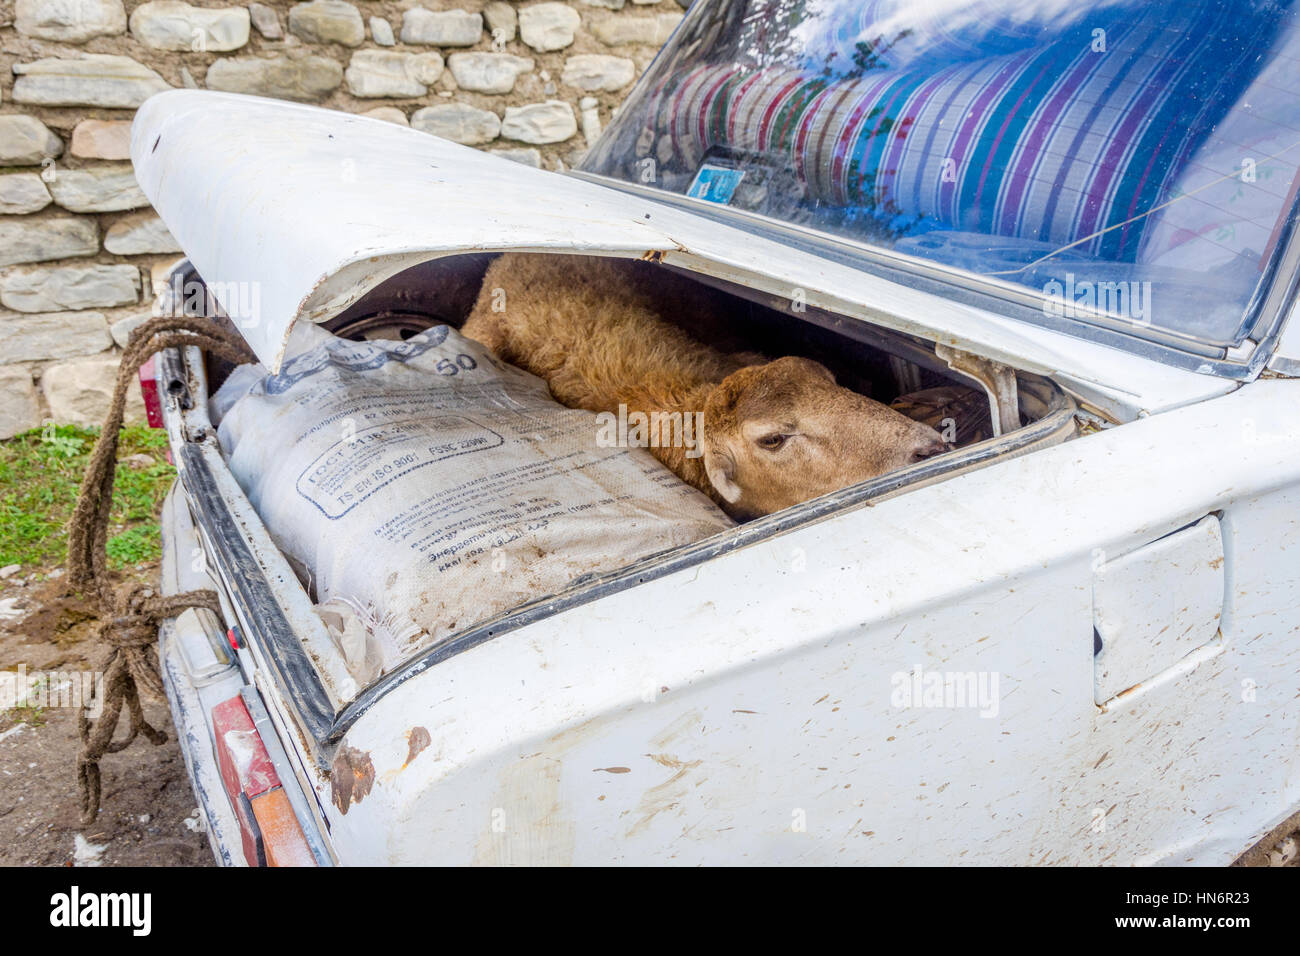 Sheep to be transported in the trunk of old lada car in Azeri countryside. - Stock Image